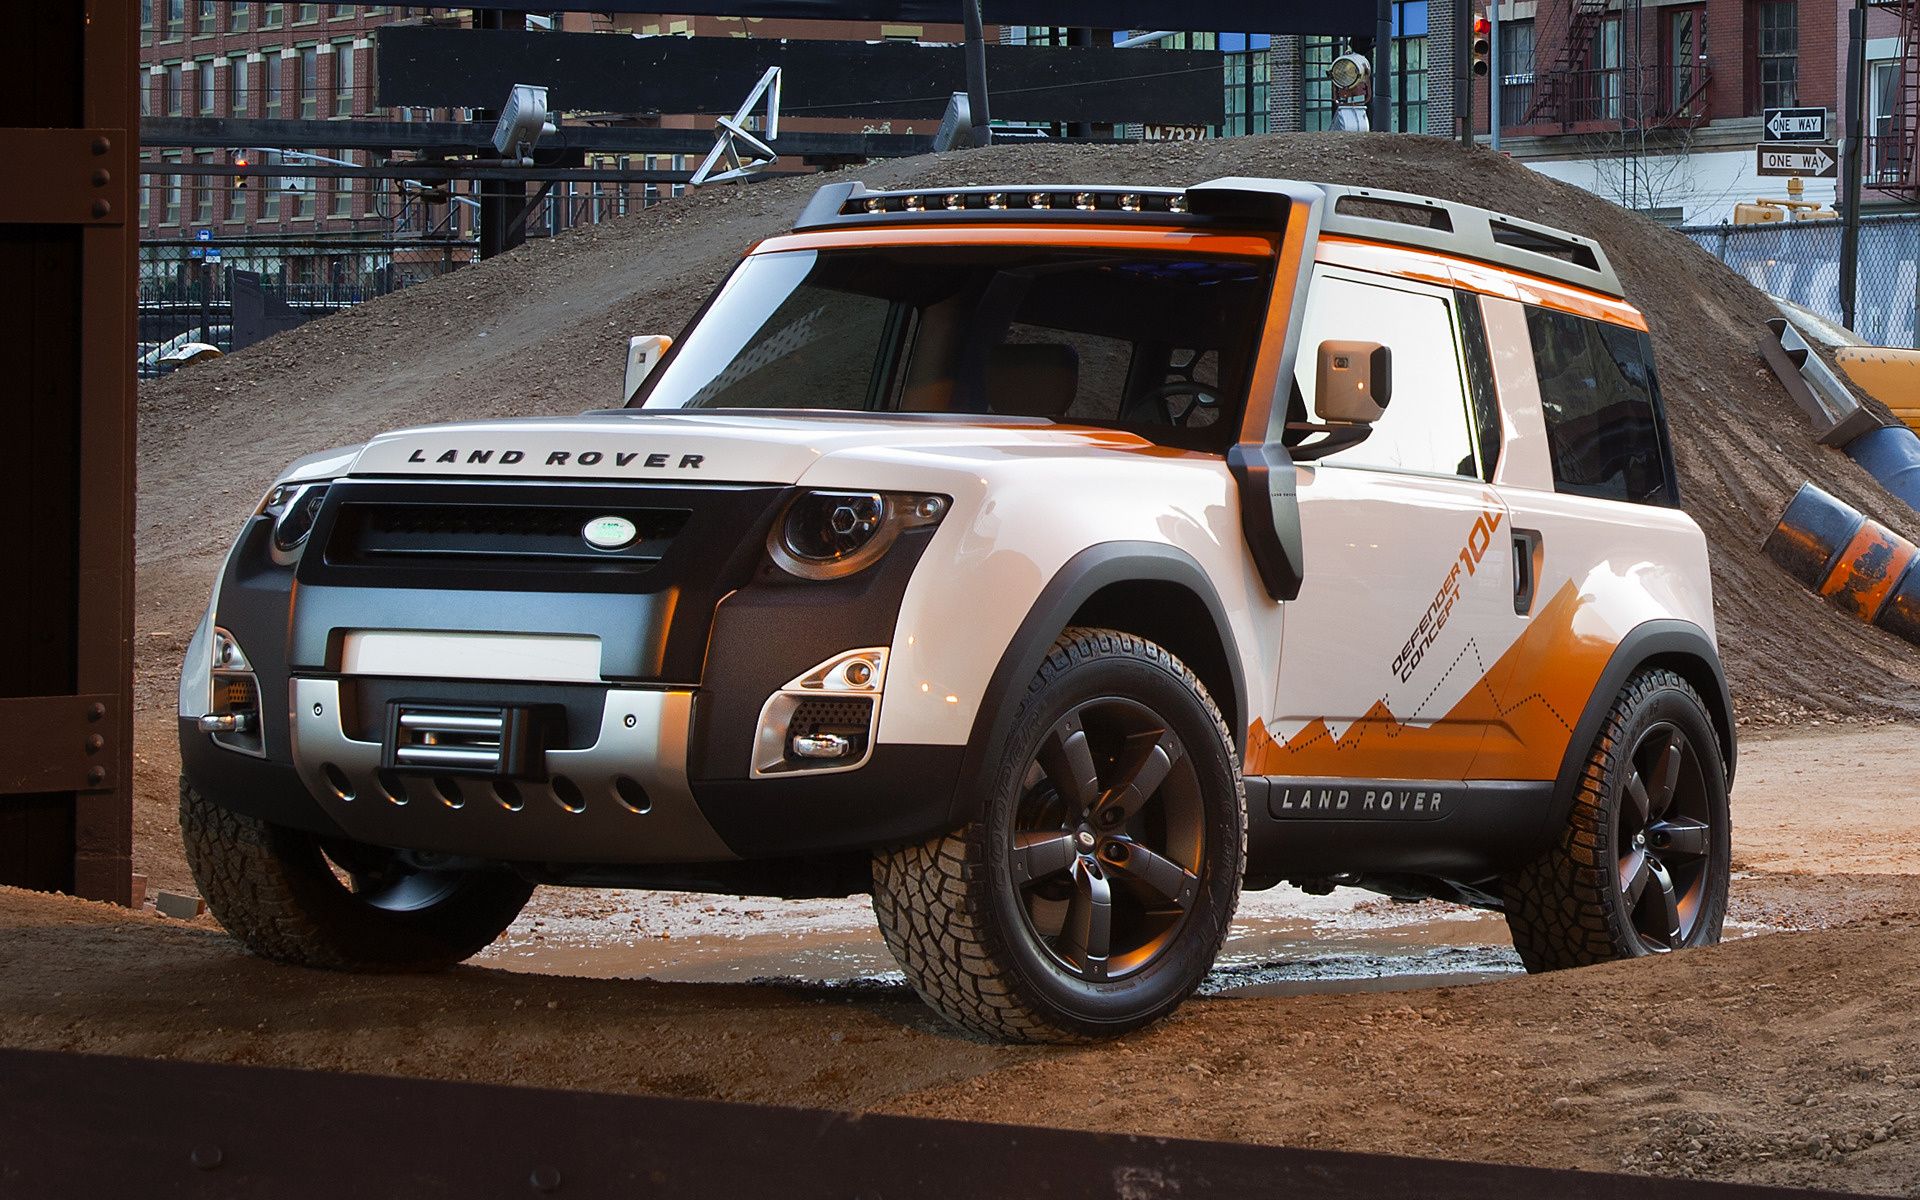 Land Rover DC100 Expedition Concept (2012) Wallpapers and ...